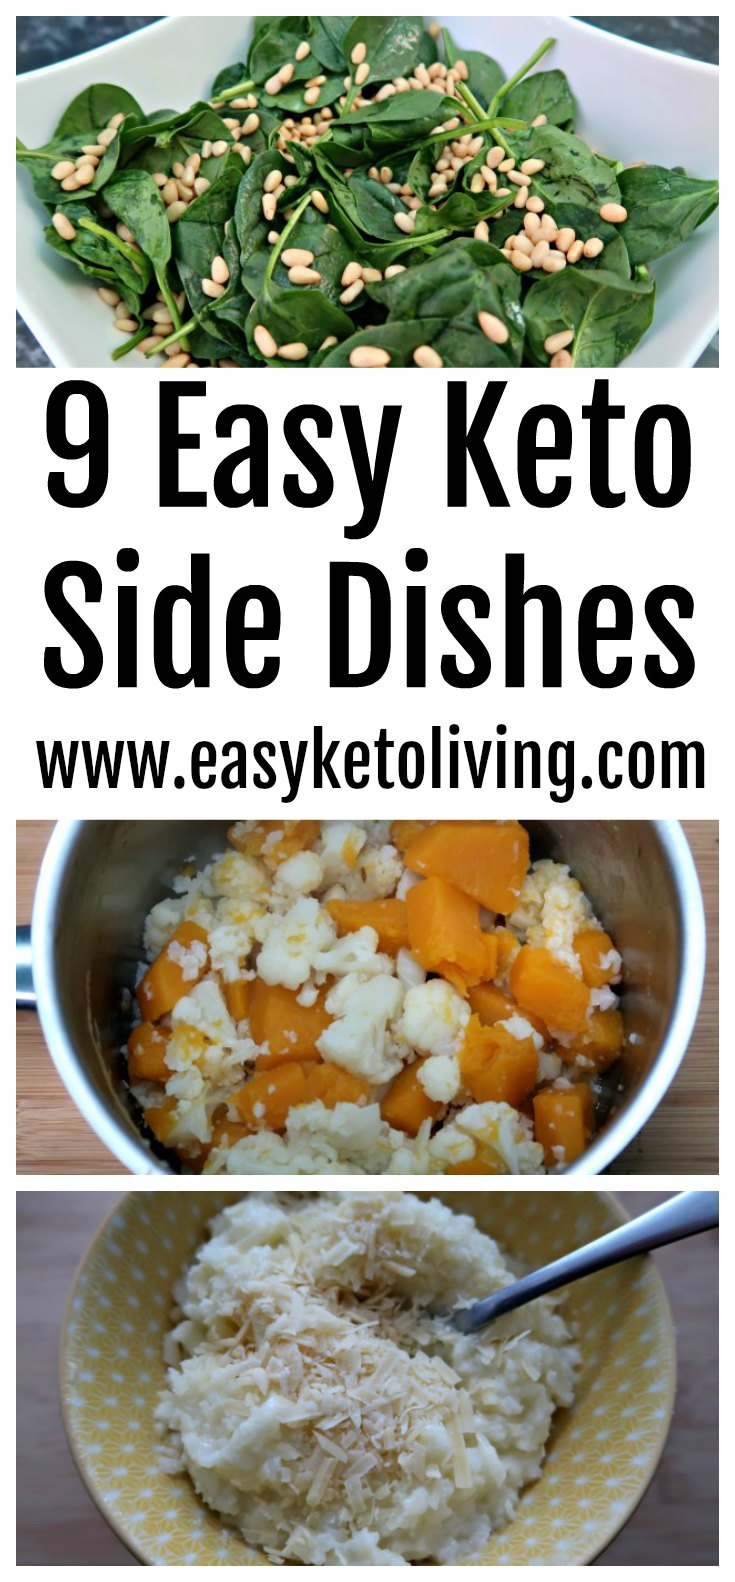 9 Easy Keto Sides Recipes Low Carb Side Dishes